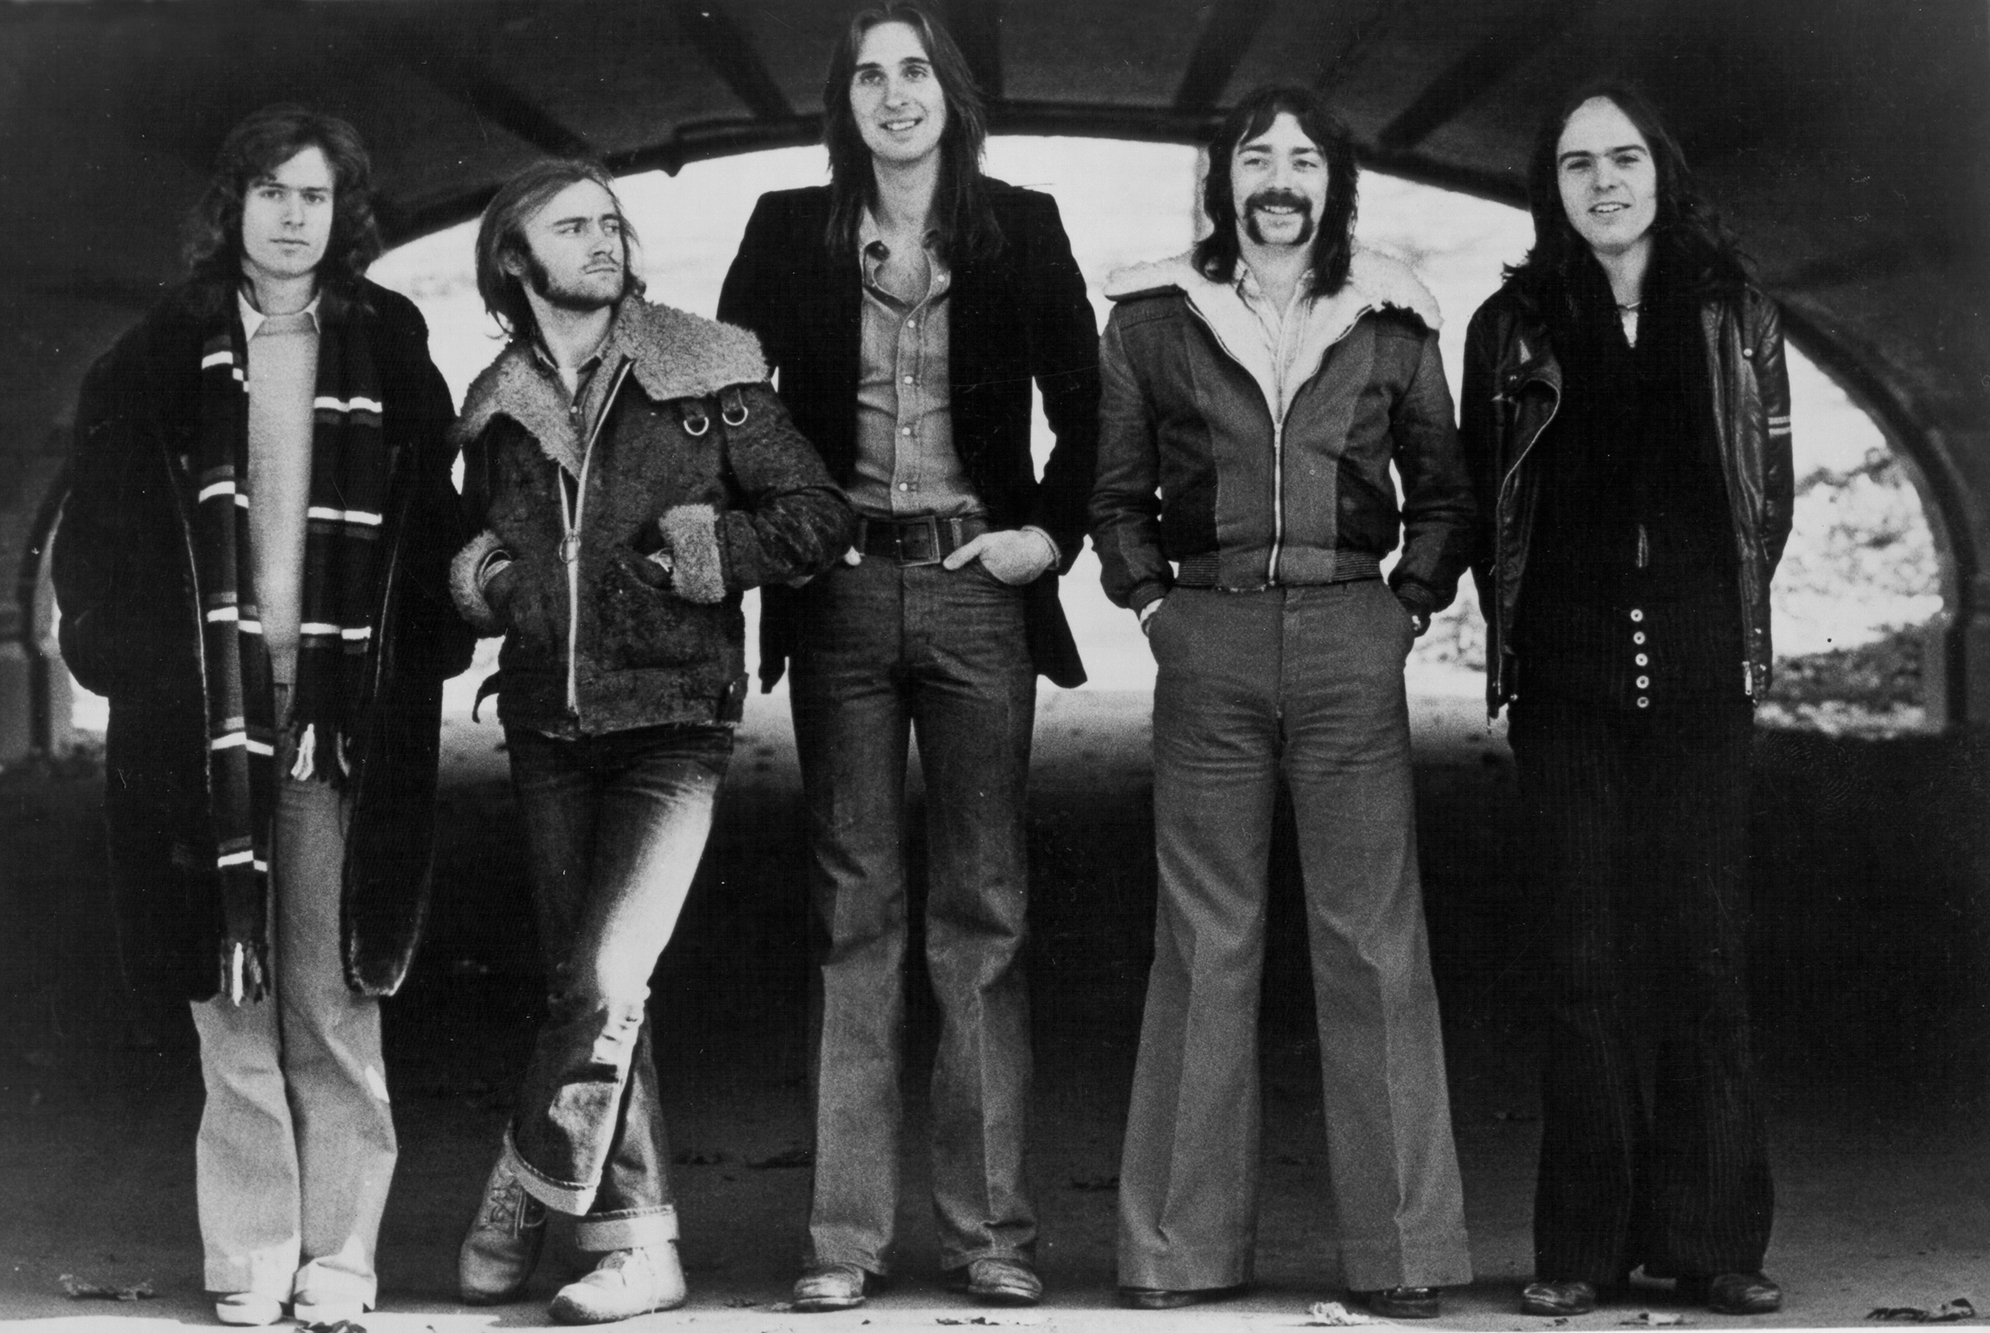 CIRCA 1973:  (L-R) Tony Banks, Phil Collins, Mike Rutherford, Steve Hackett and Peter Gabriel of the progressive rock band Genesis pose for a portrait in circa 1973. (Photo by Michael Ochs Archives/Getty Images)